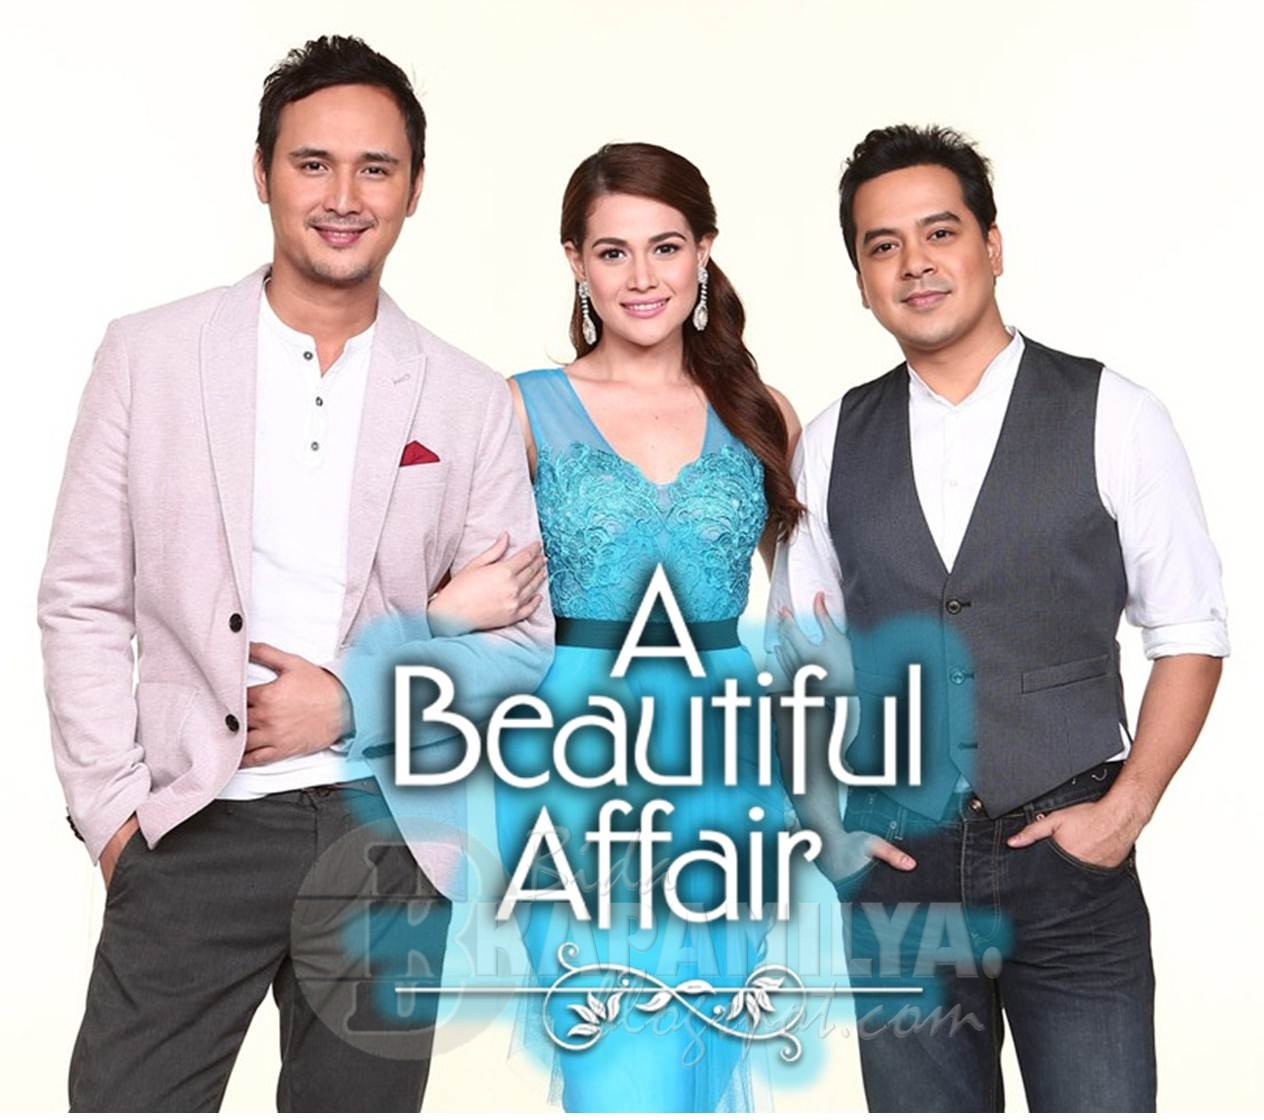 A BEAUTIFUL AFFAIR - NOV. 01, 2012 PART 1/4